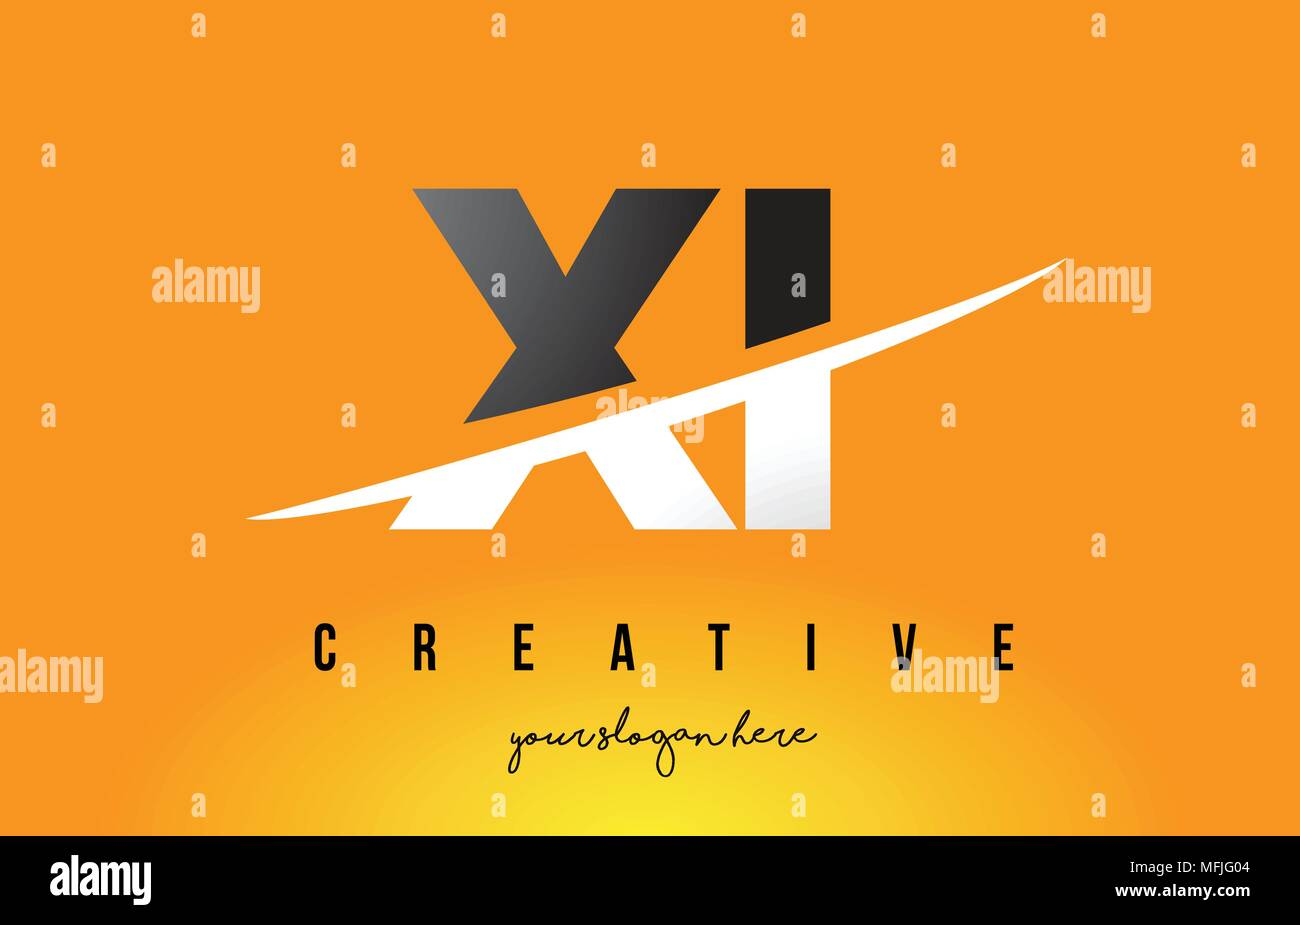 XI X I Letter Modern Logo Design with Swoosh Cutting the Middle Letters and Yellow Background. - Stock Vector